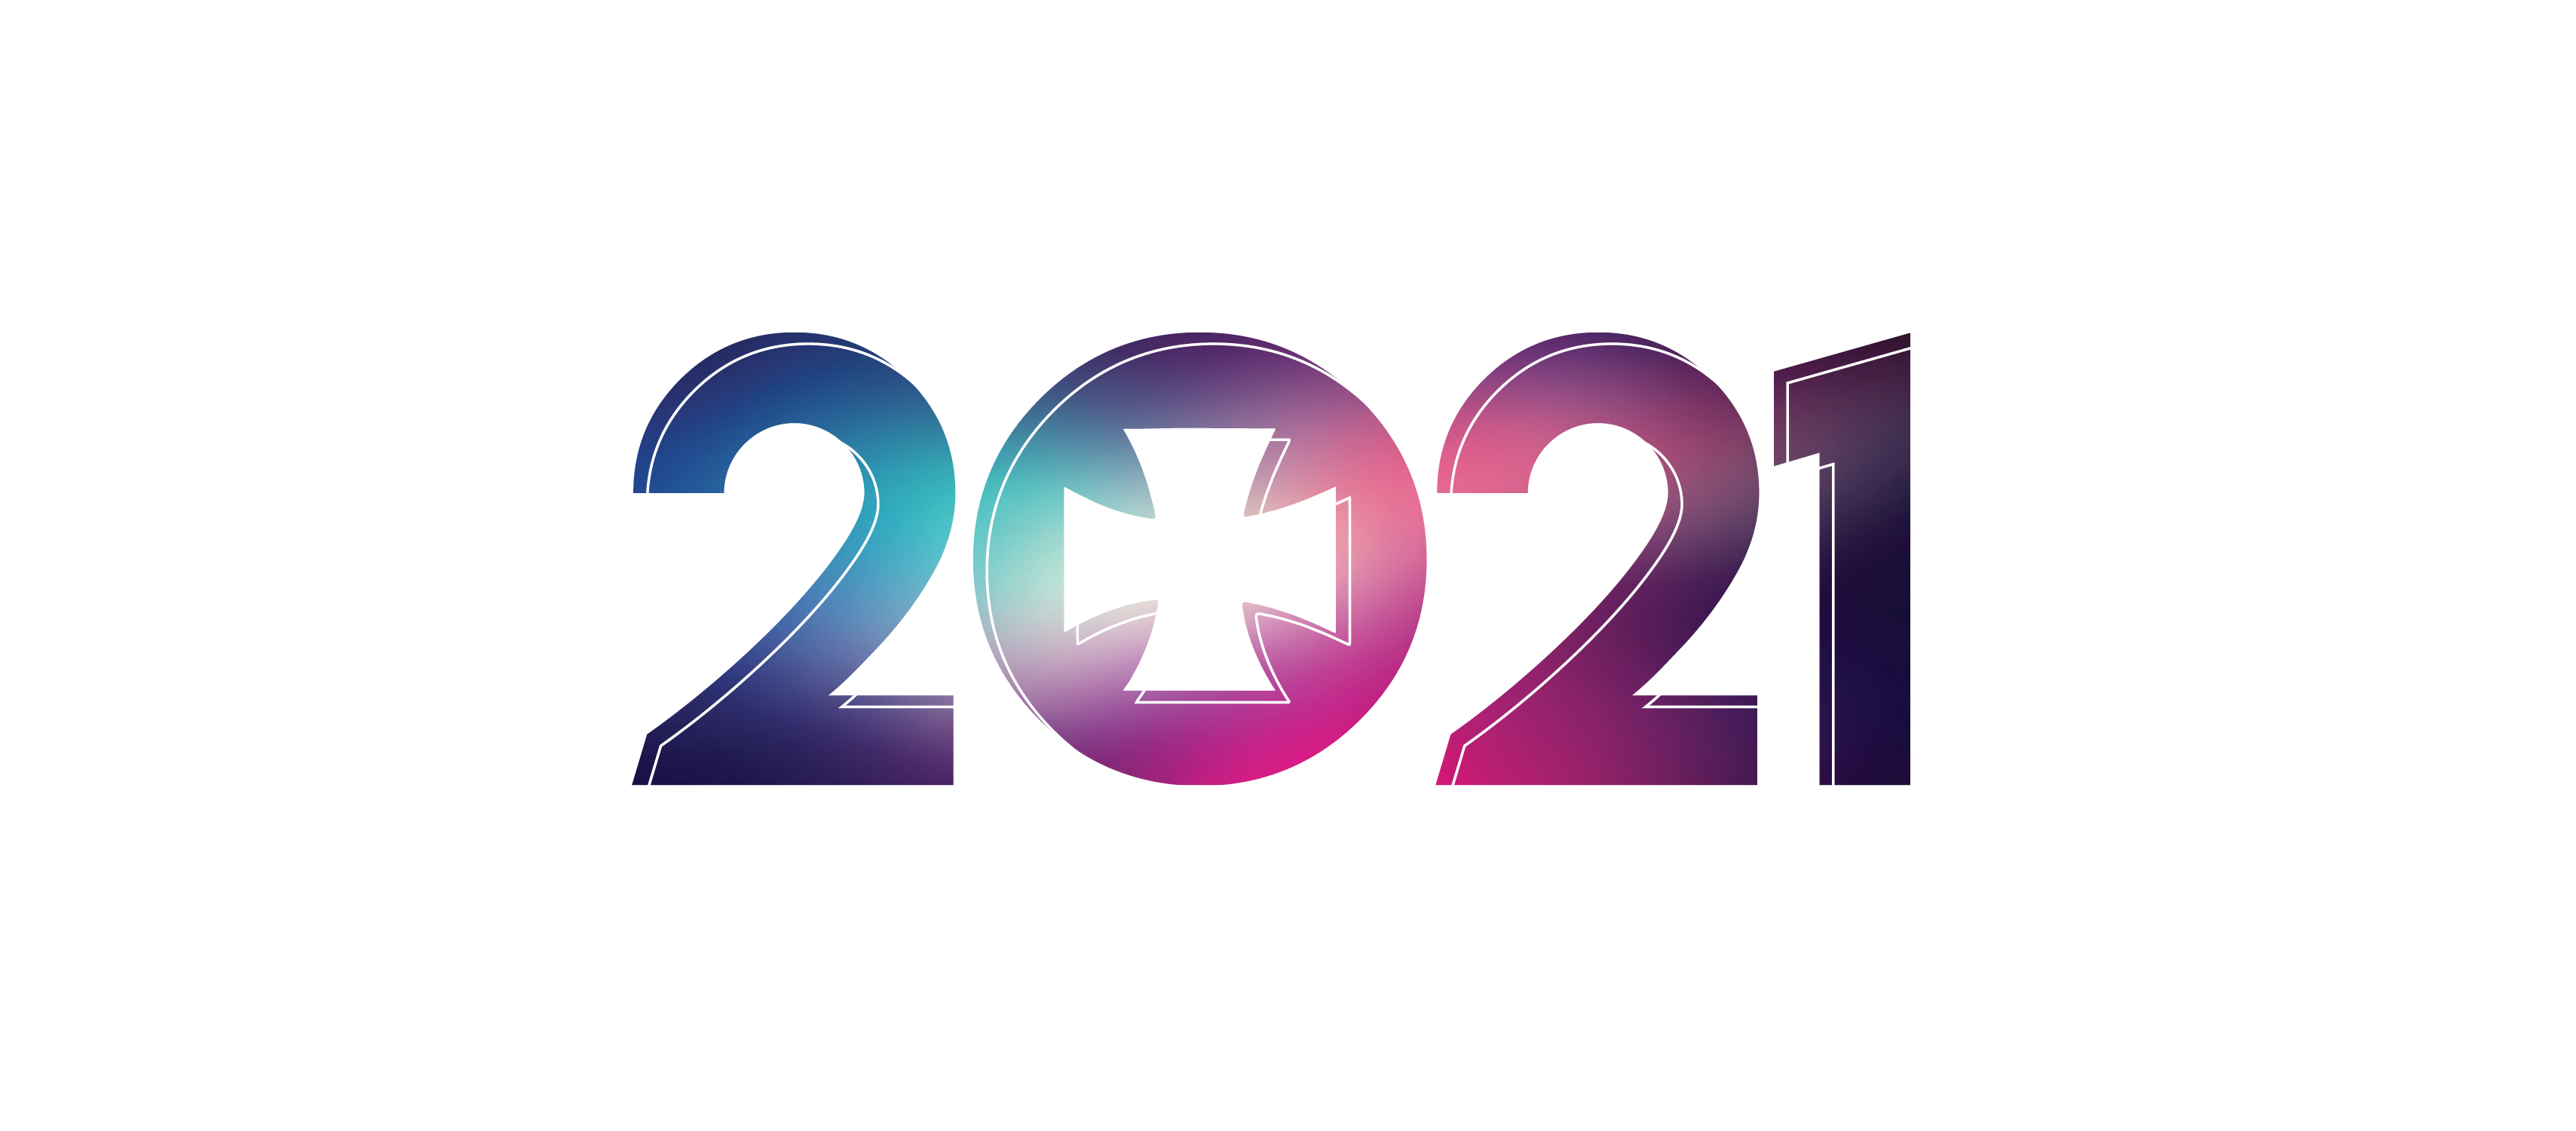 Basic%202021%20Banner:FB%20Cover%20large